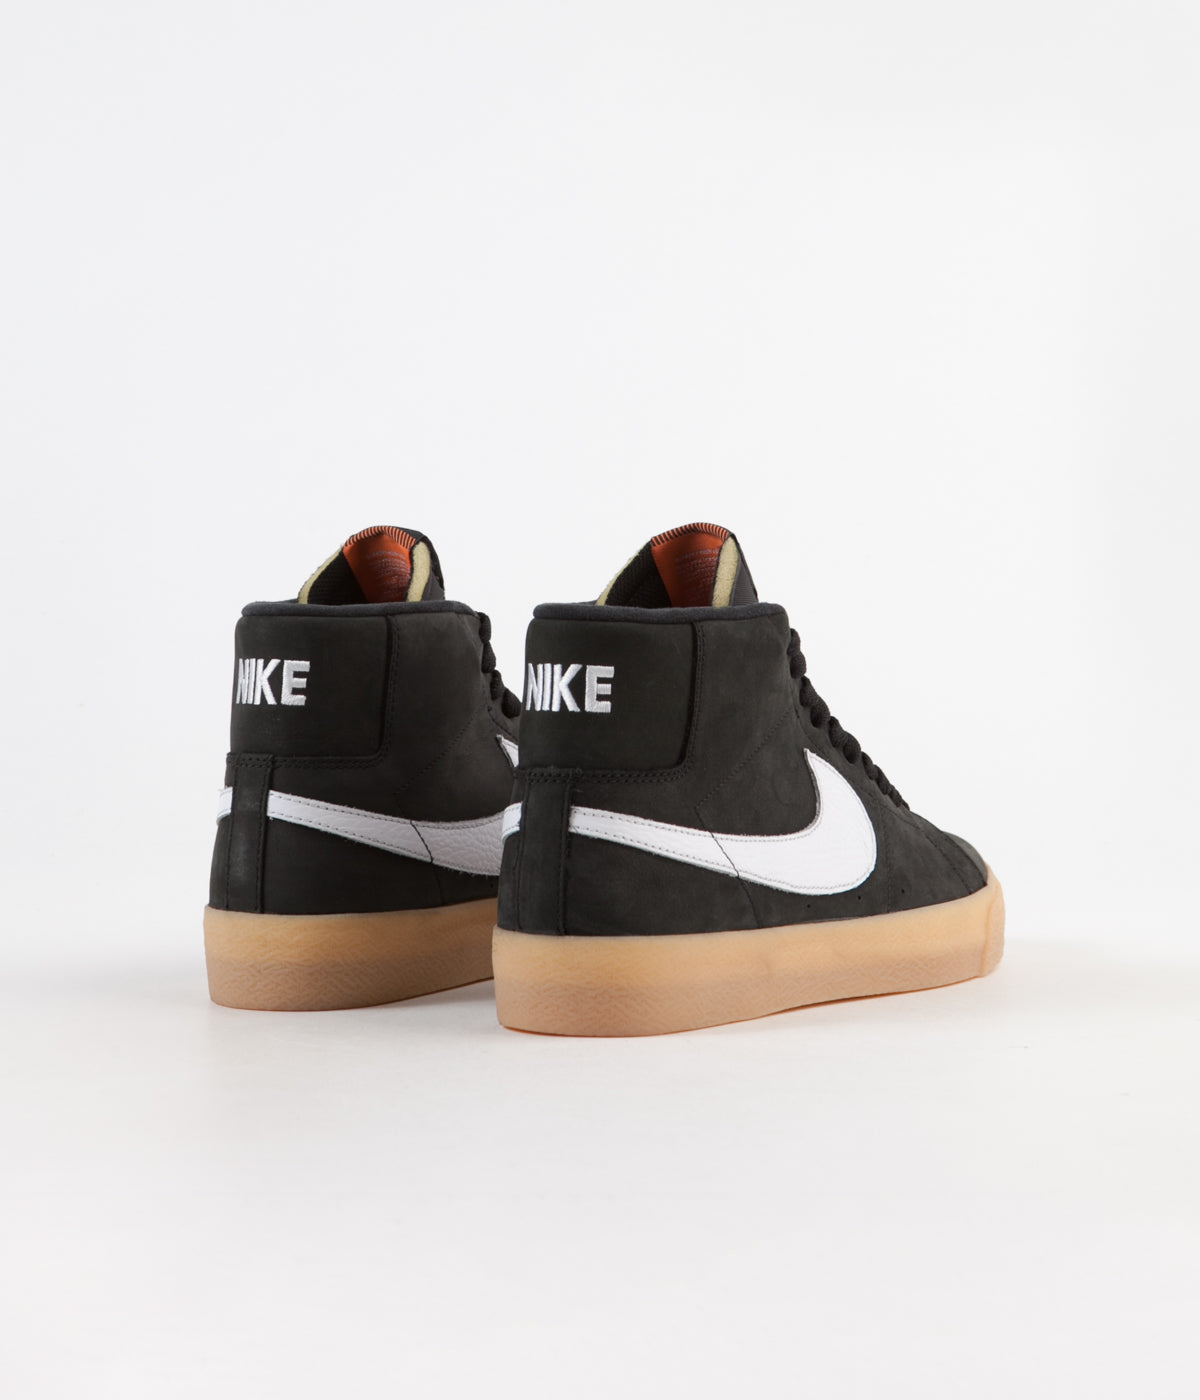 Nike SB Orange Label Blazer Mid Shoes Black White